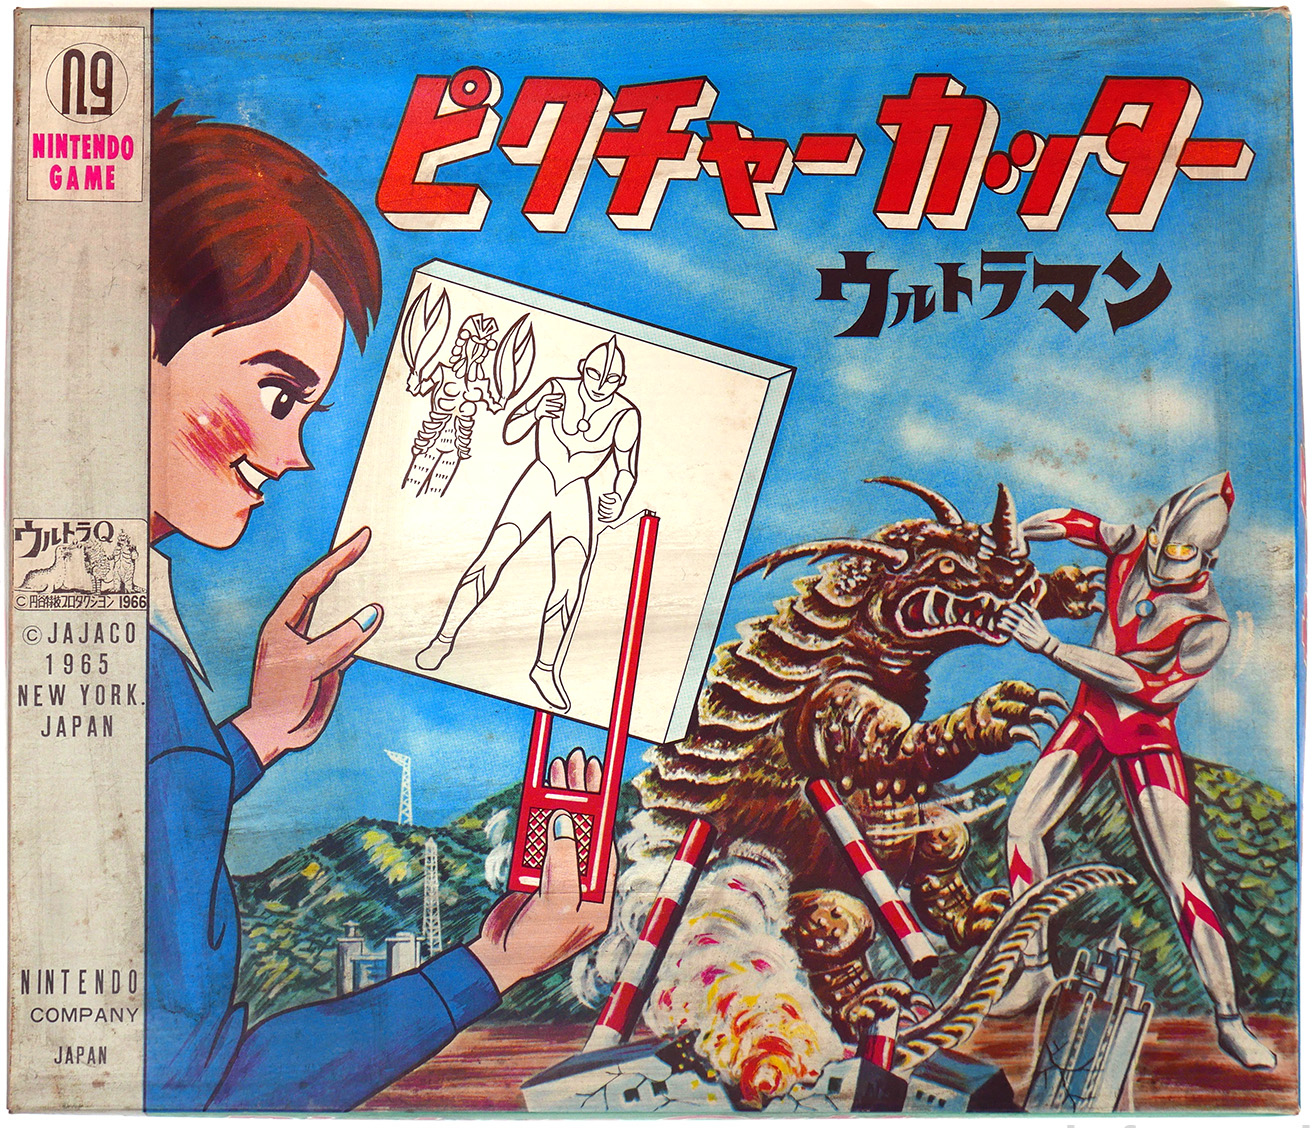 'Picture Cutter Ultraman'